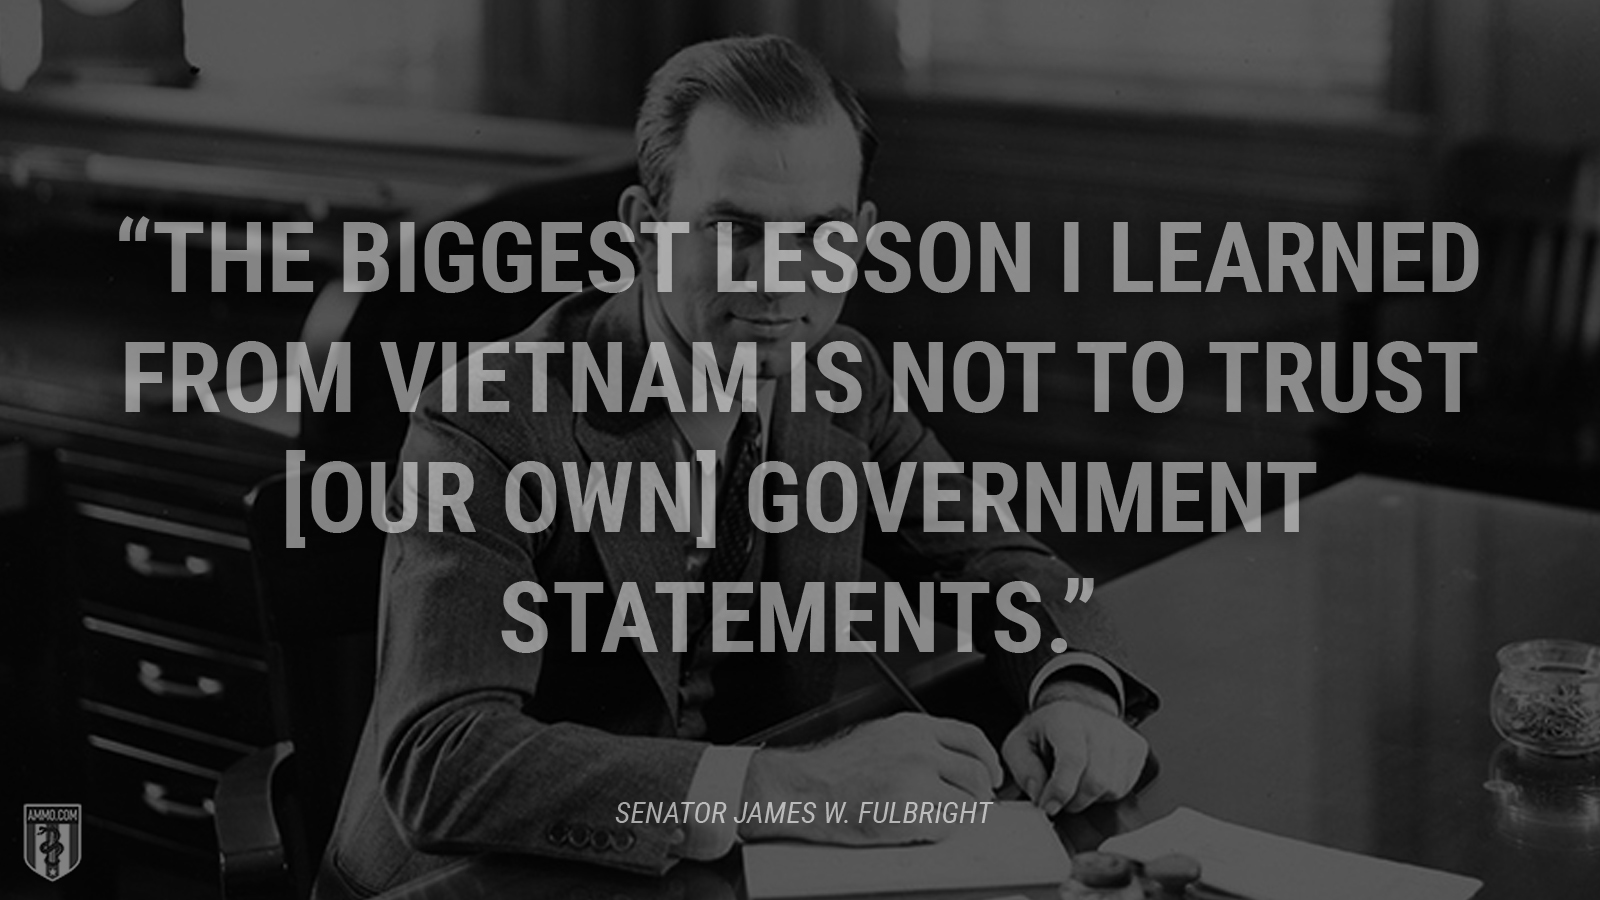 """The biggest lesson I learned from Vietnam is not to trust [our own] government statements."" - Senator James W. Fulbright"